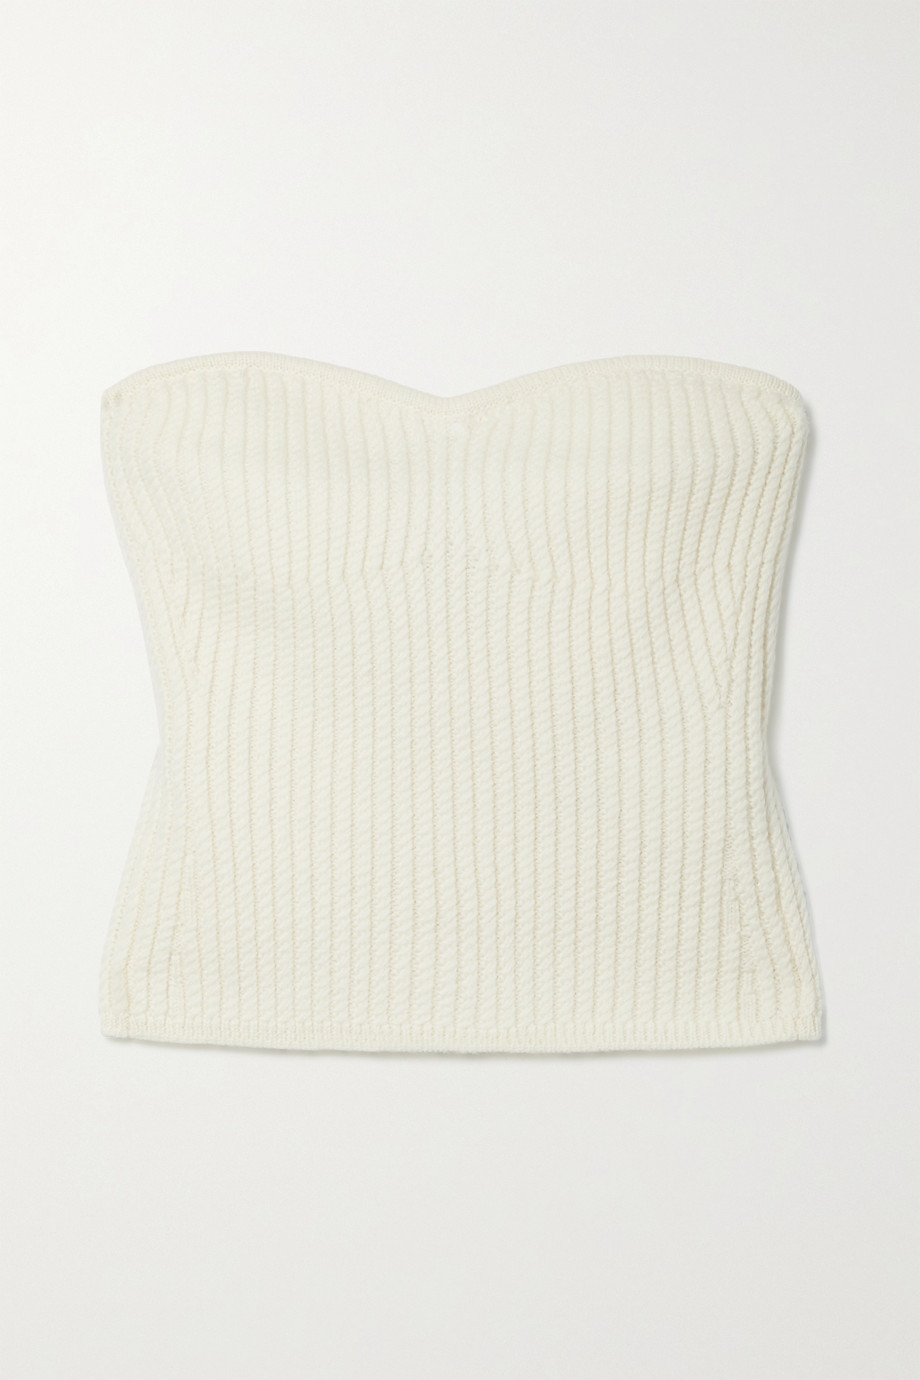 SAINT LAURENT Strapless ribbed wool top